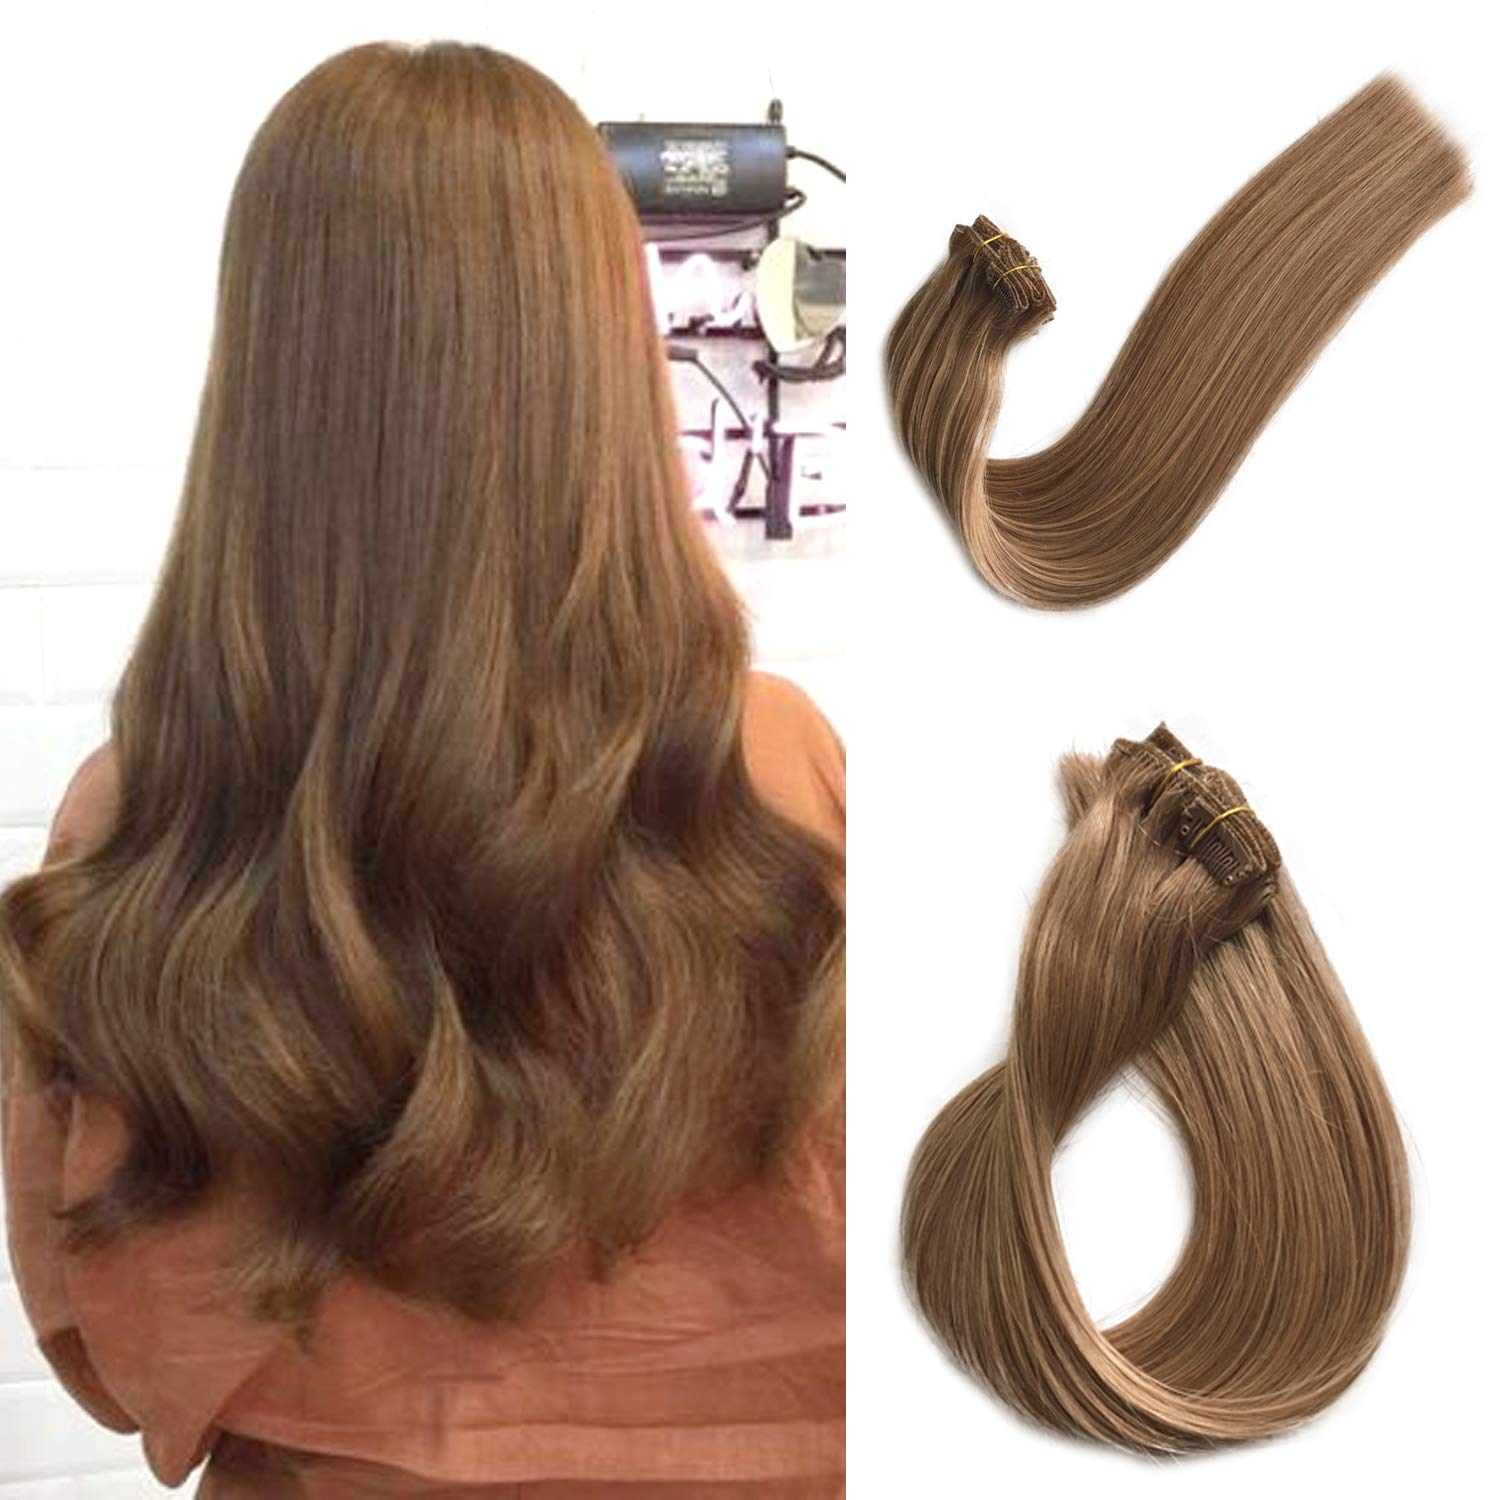 Clip in Real Remy Hair Extensions Human Hair Extensions Clip on for Black/White Women Double Weft Full Head Thicken from Top to End Glueless Straight Natural Golden Brown 70g 7pcs 16 Clips 18 Inch